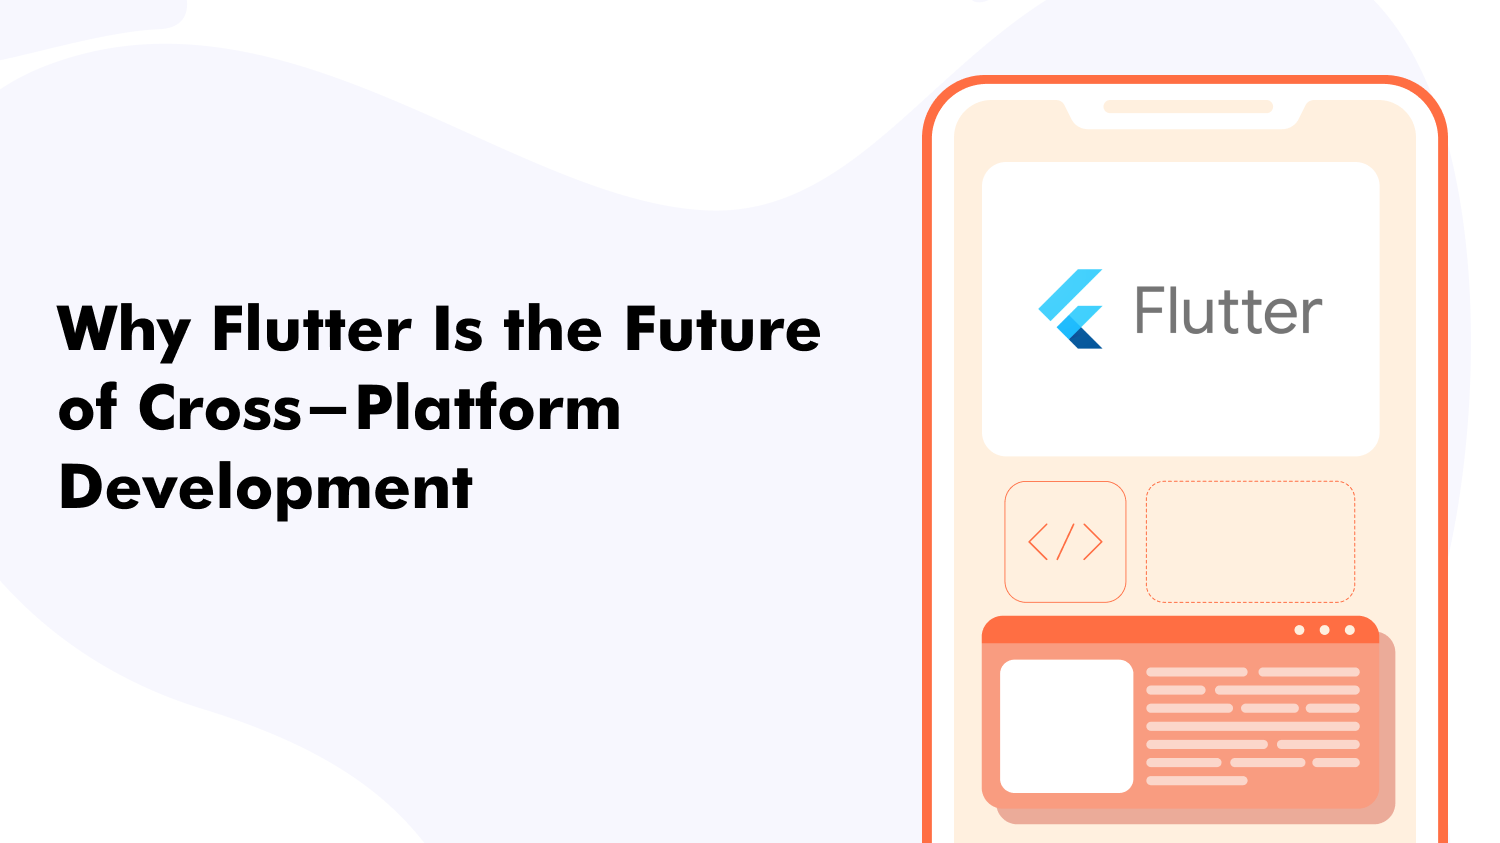 Why Flutter Is the Future of Cross-Platform Development